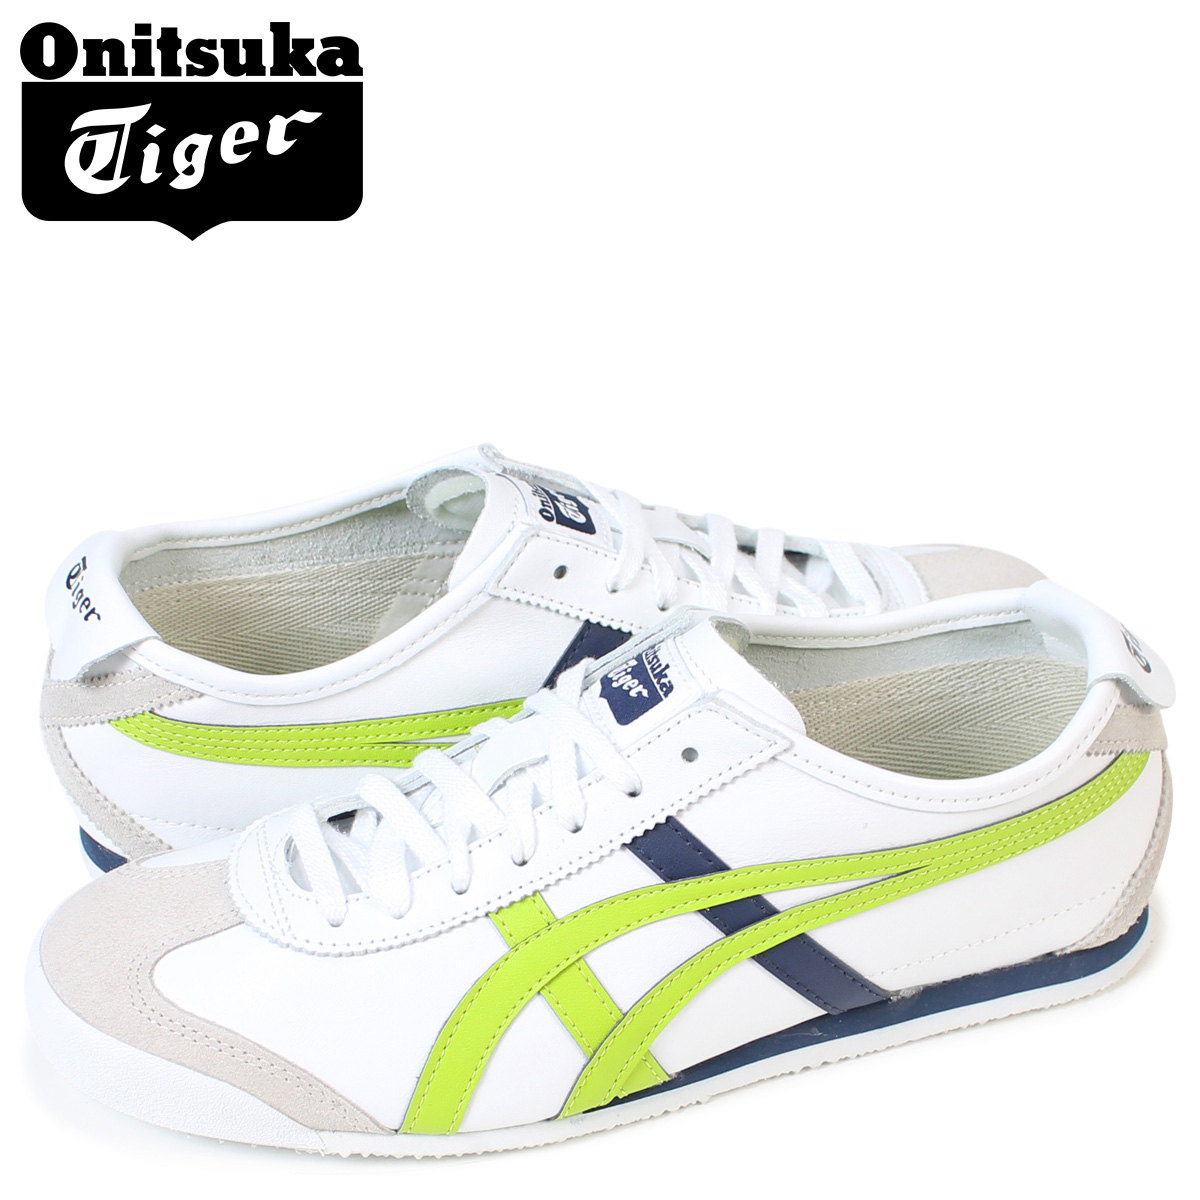 online retailer 3c425 c1393 Onitsuka Tiger Mexico 66 Onitsuka tiger MEXICO 66 men's sneakers ASICS  HL474-0187 shoes white [load planned Shinnyu load in reservation product  9/26 ...